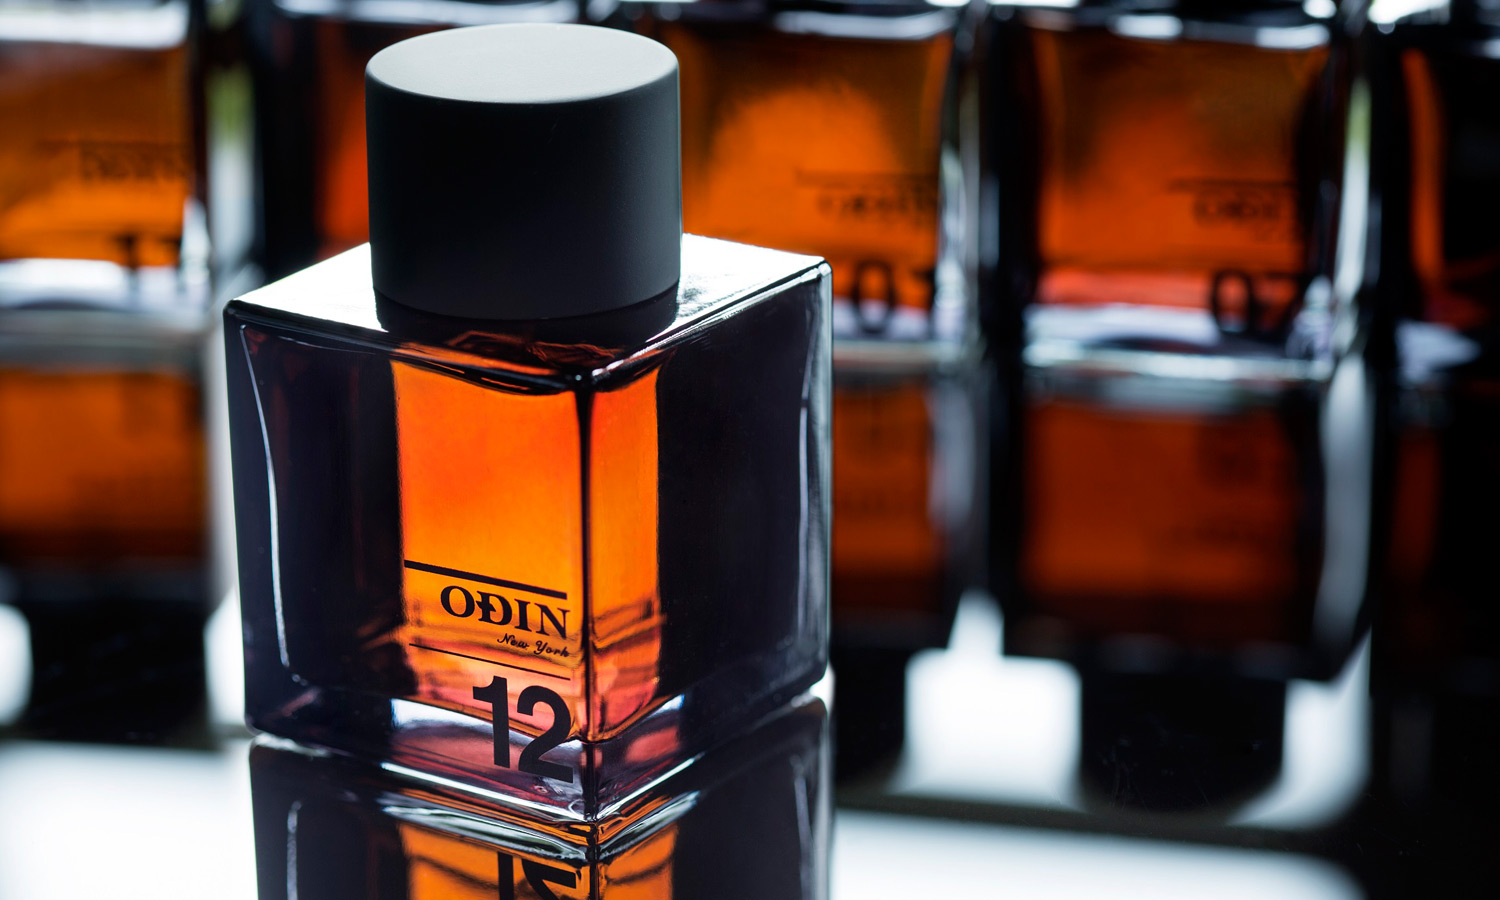 Odin-White-Fragrance-Line-feature